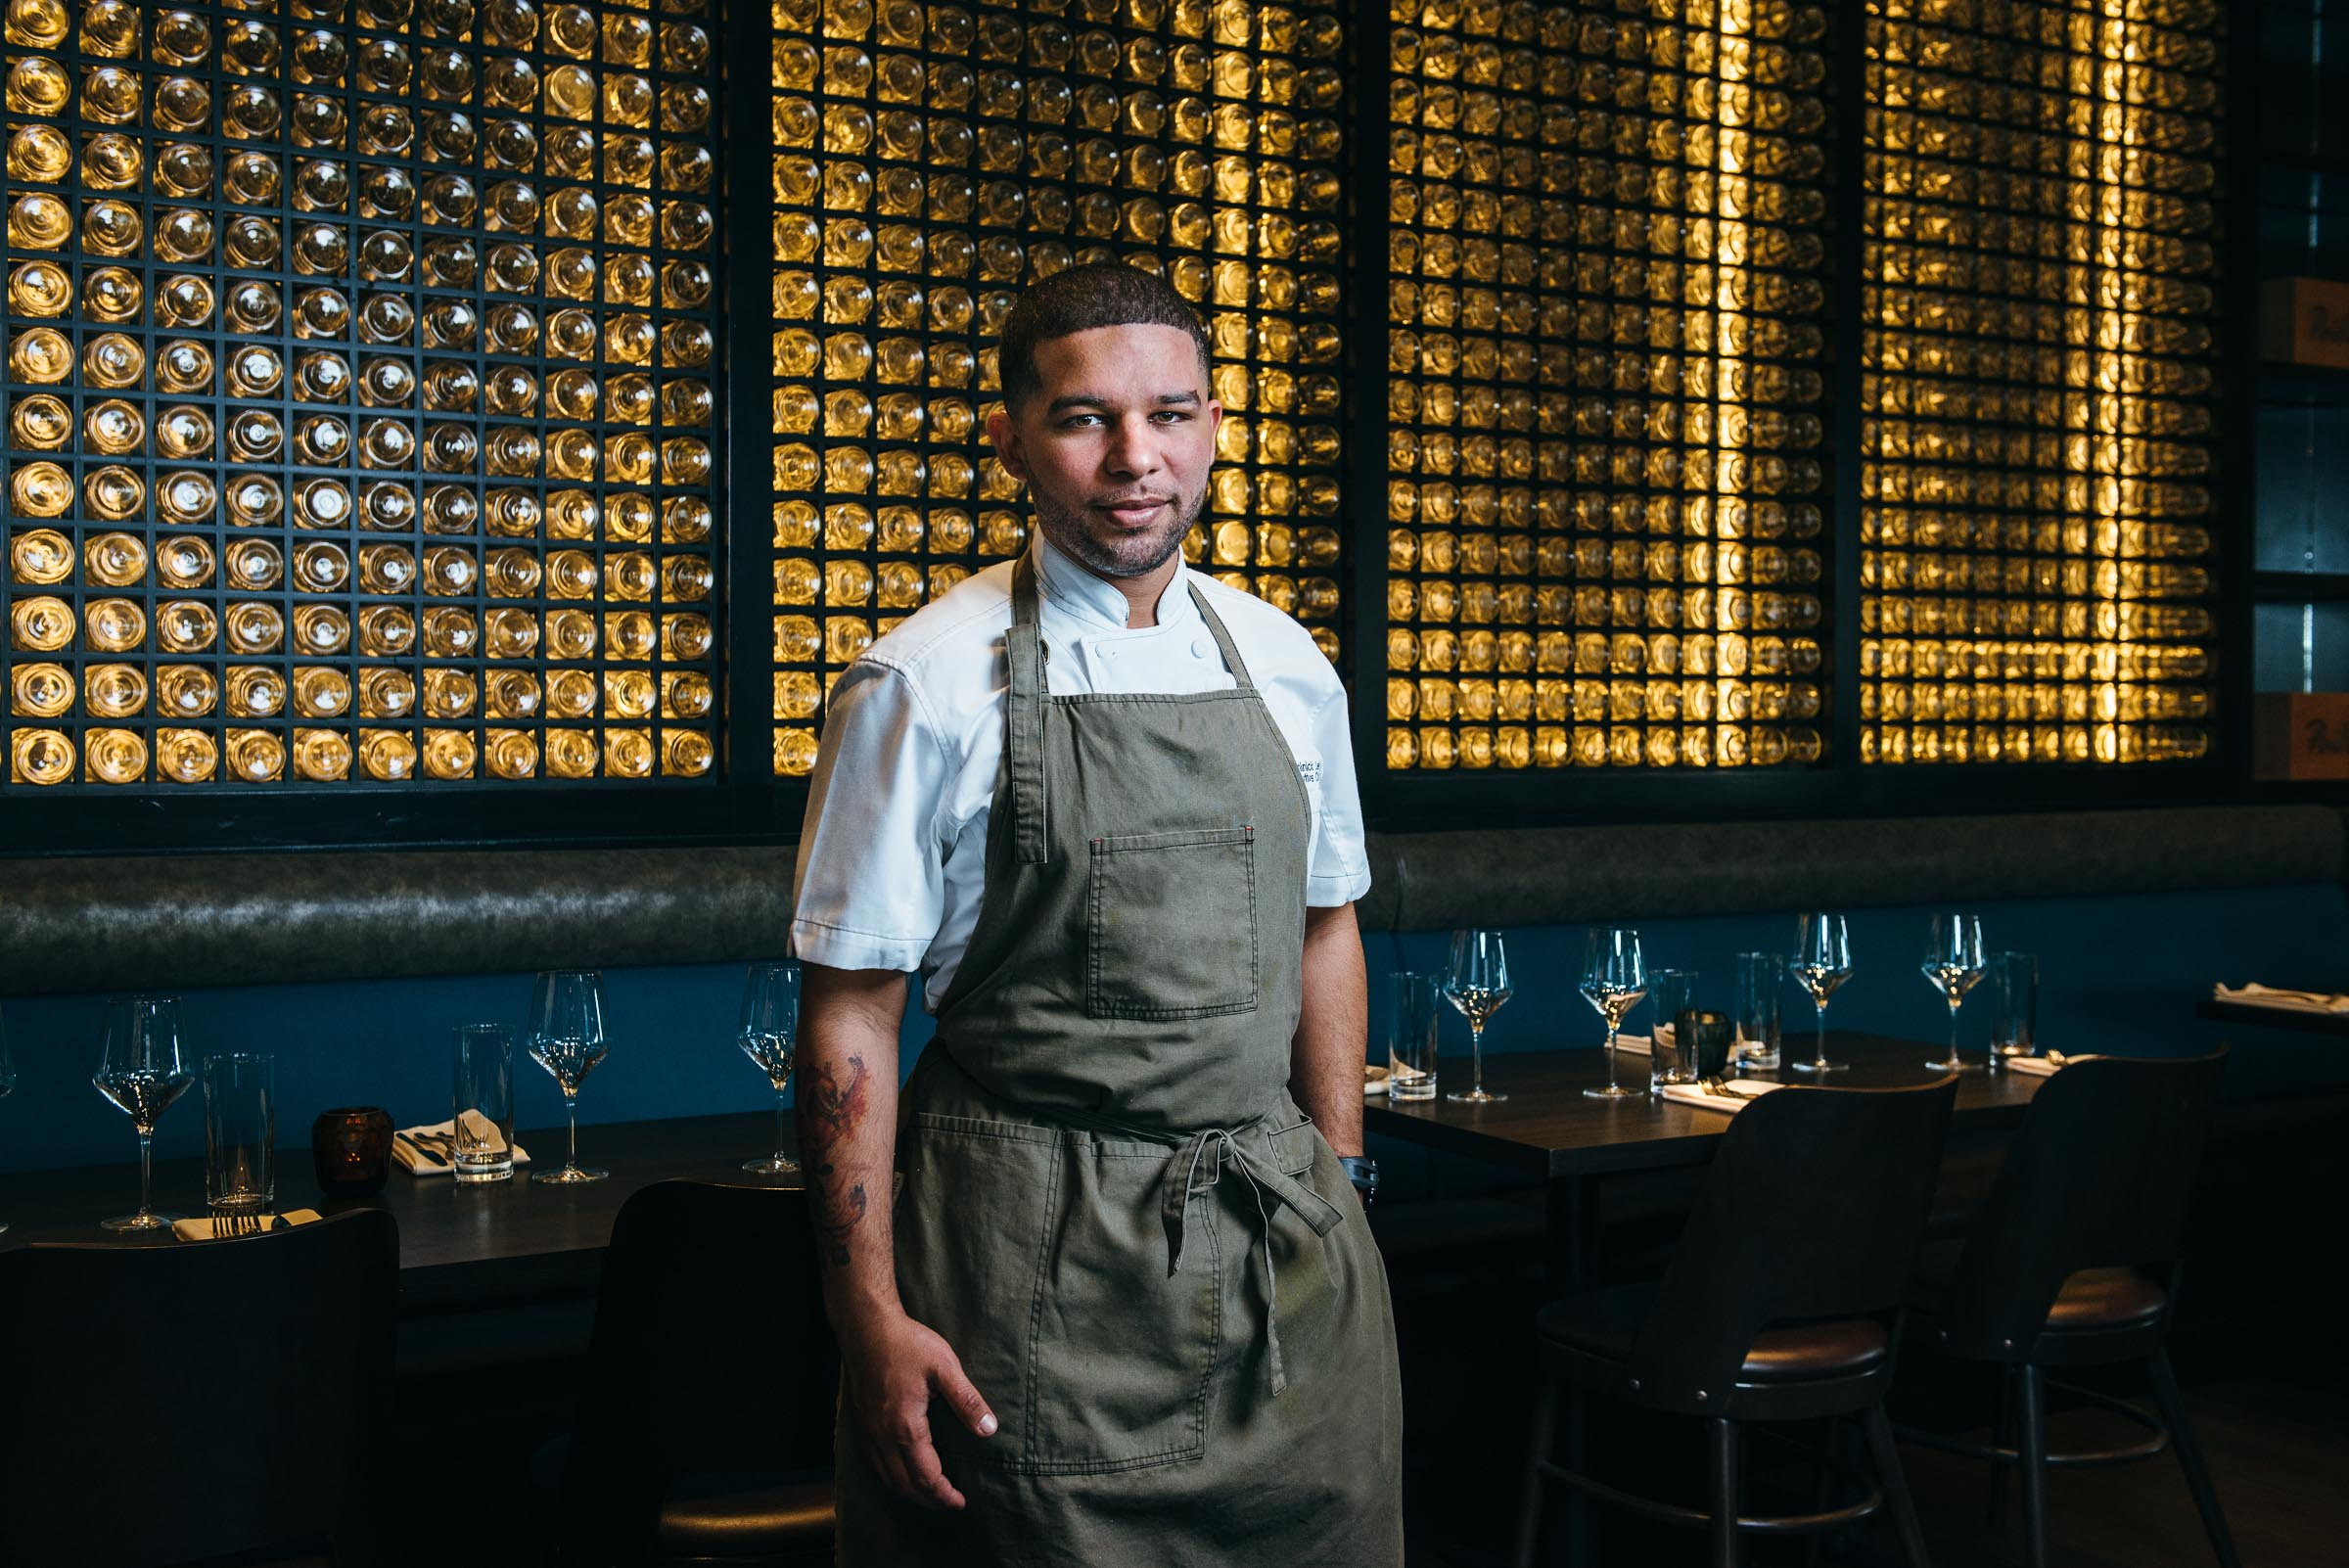 Chef portrait - Dominick Lee at Poitin Restaurant Houston TX